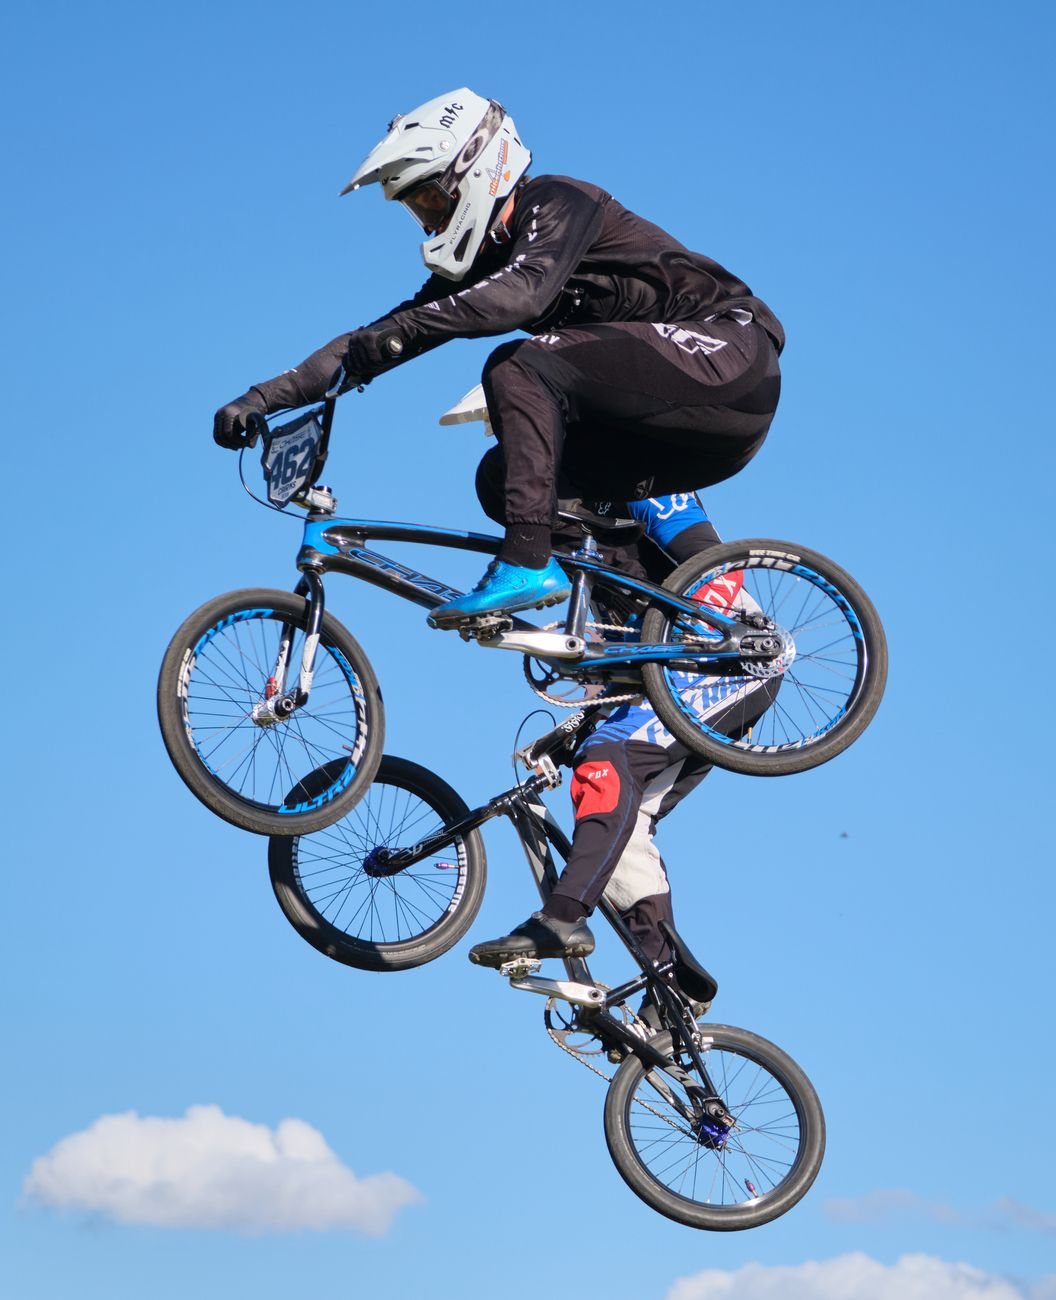 BMX racing is back after COVID-19 Lockdowns.